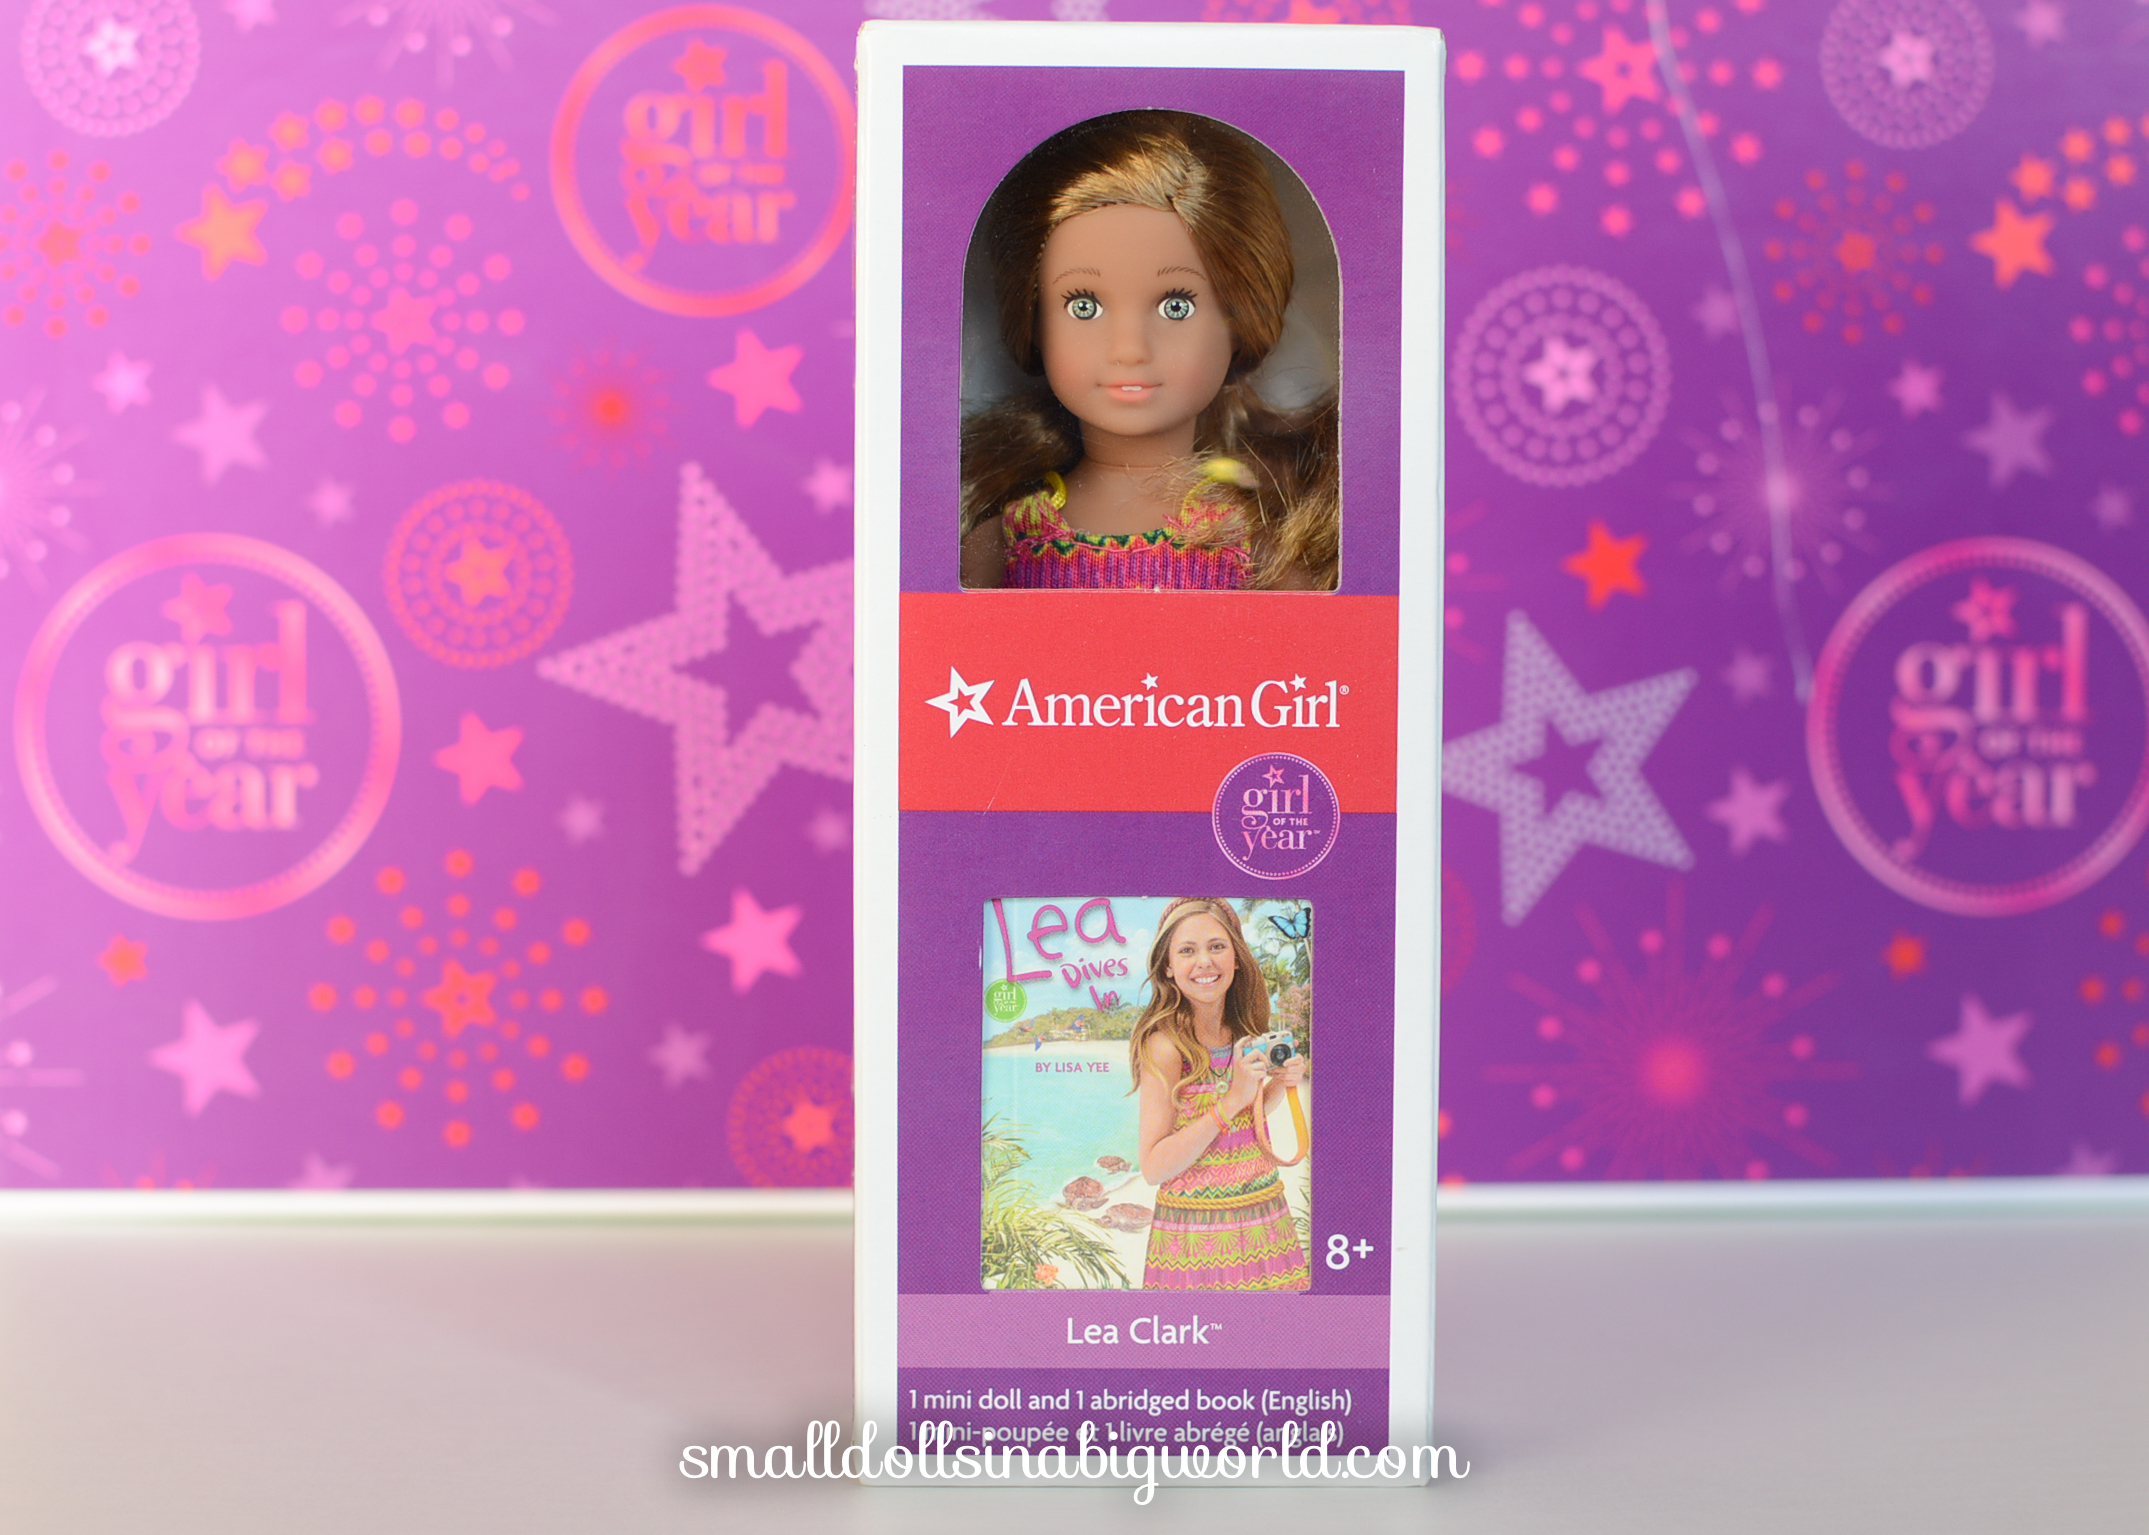 American girl giveaways lea clark